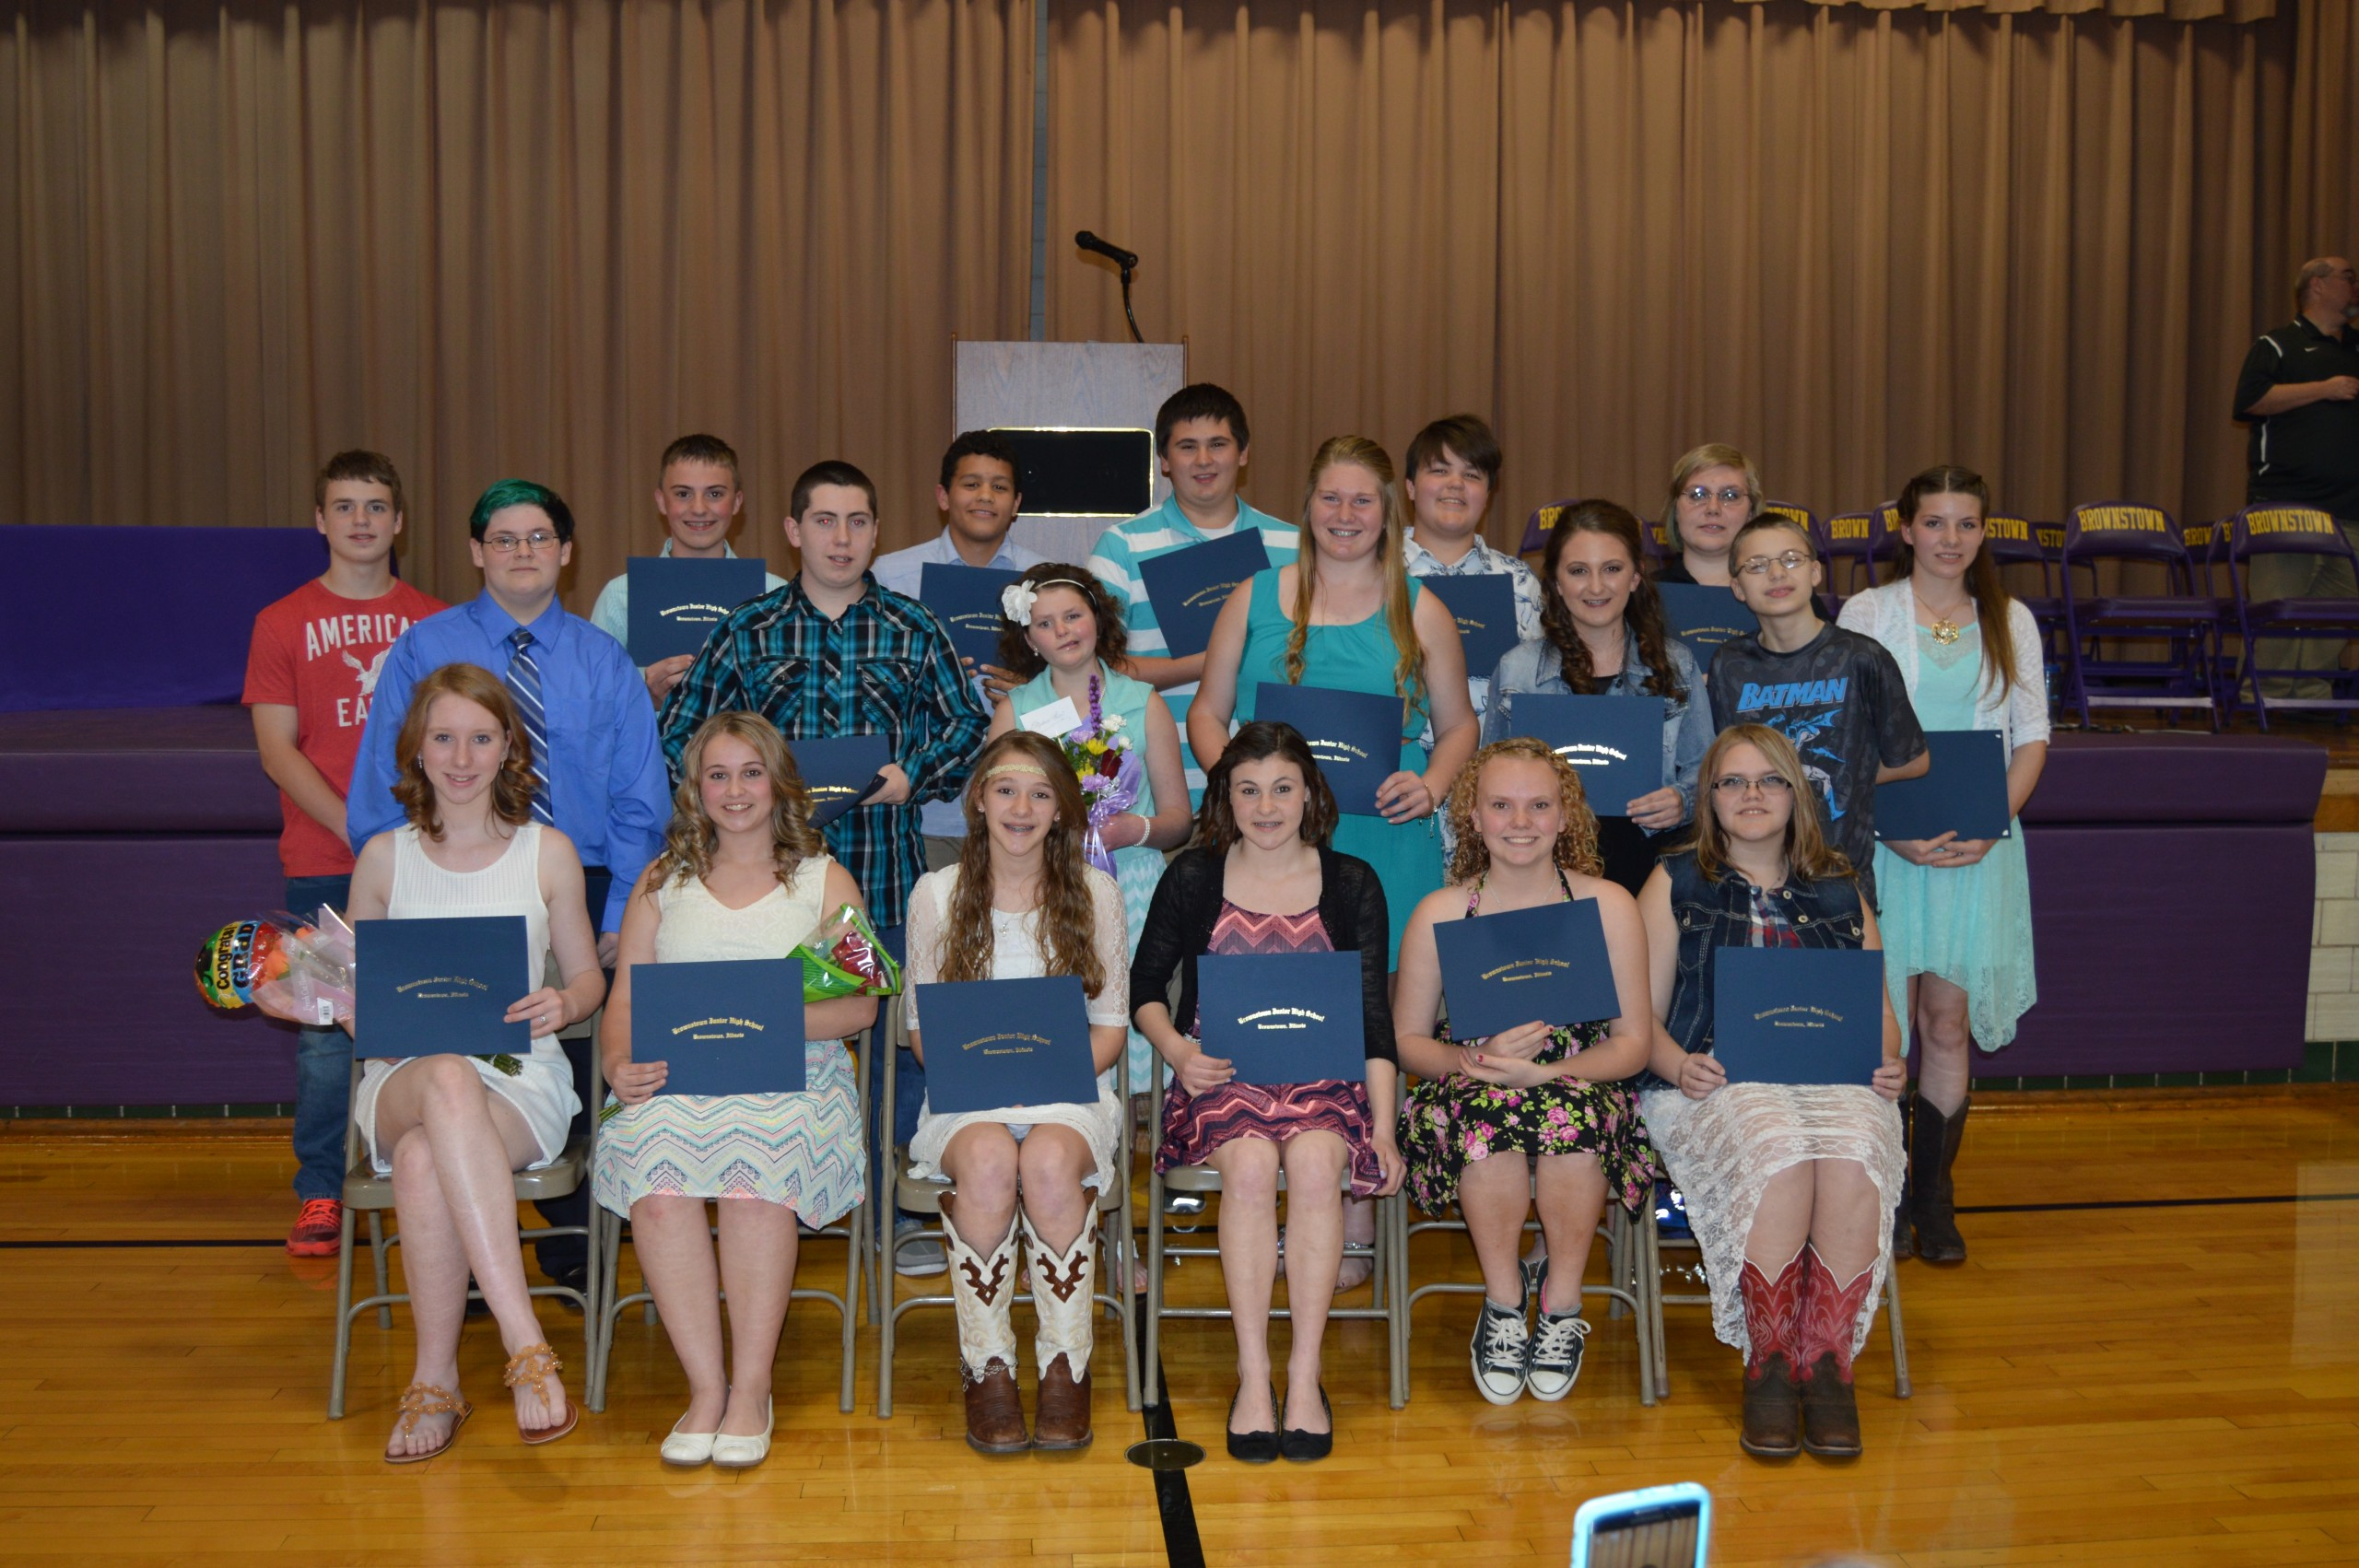 Brownstown holds 8th grade promotion/recognition ceremony